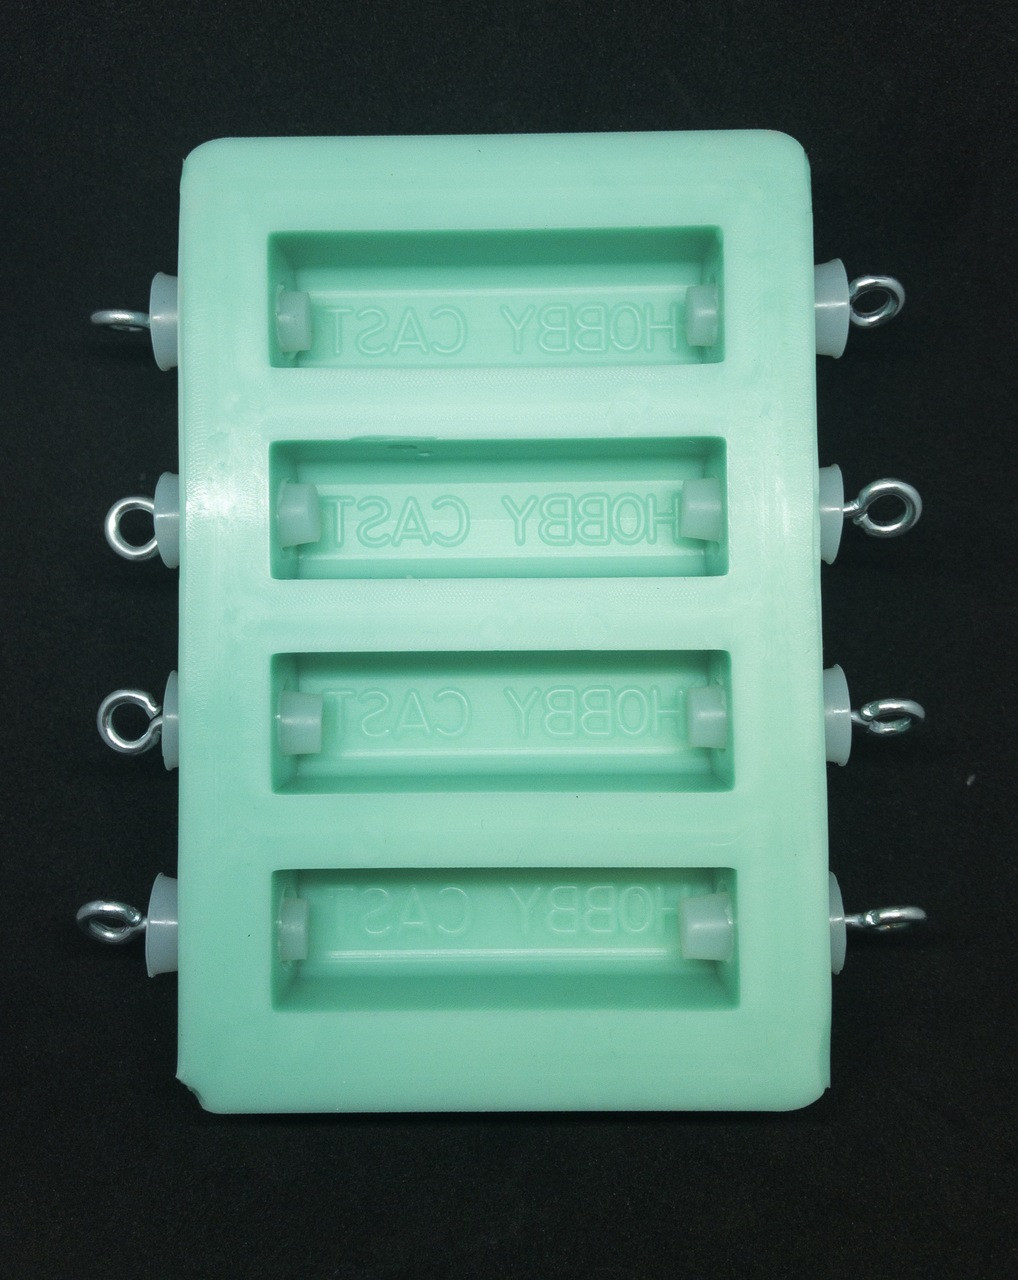 HOBBY-CAST SIERRA / BOLT ACTION Silicone Mold 4 Cavity TUBE IN MOLD